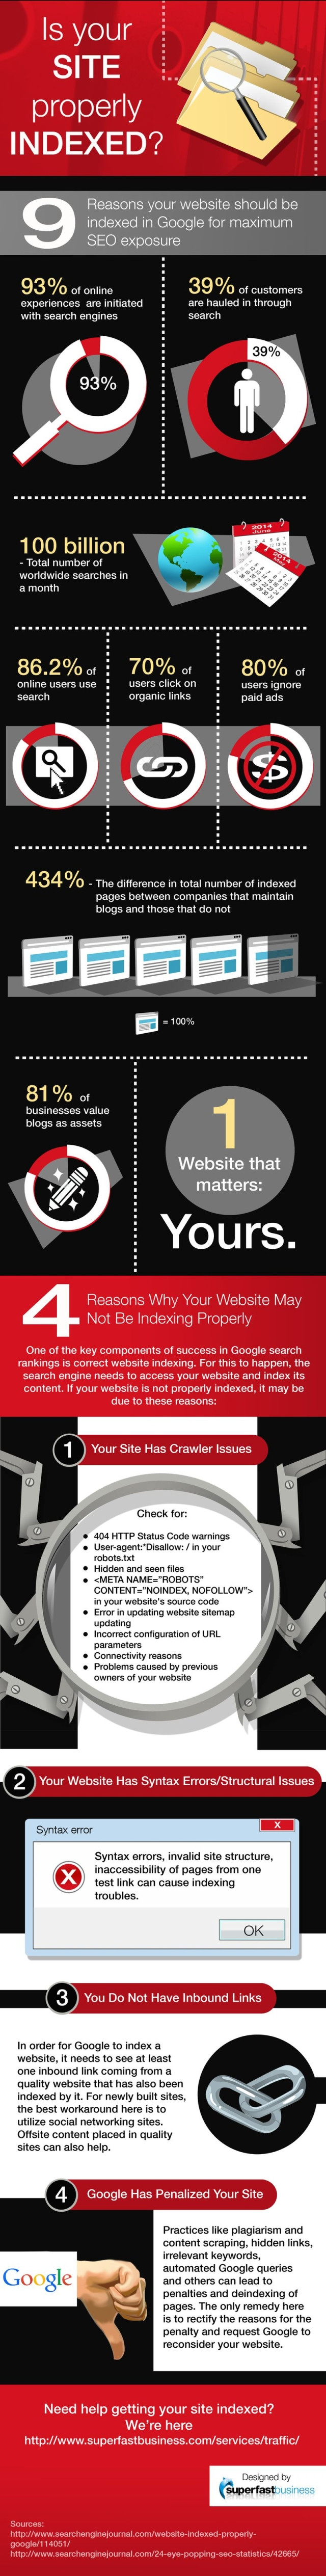 4 Reasons Your Website Has Crappy SEO and Can't Be Found on Google